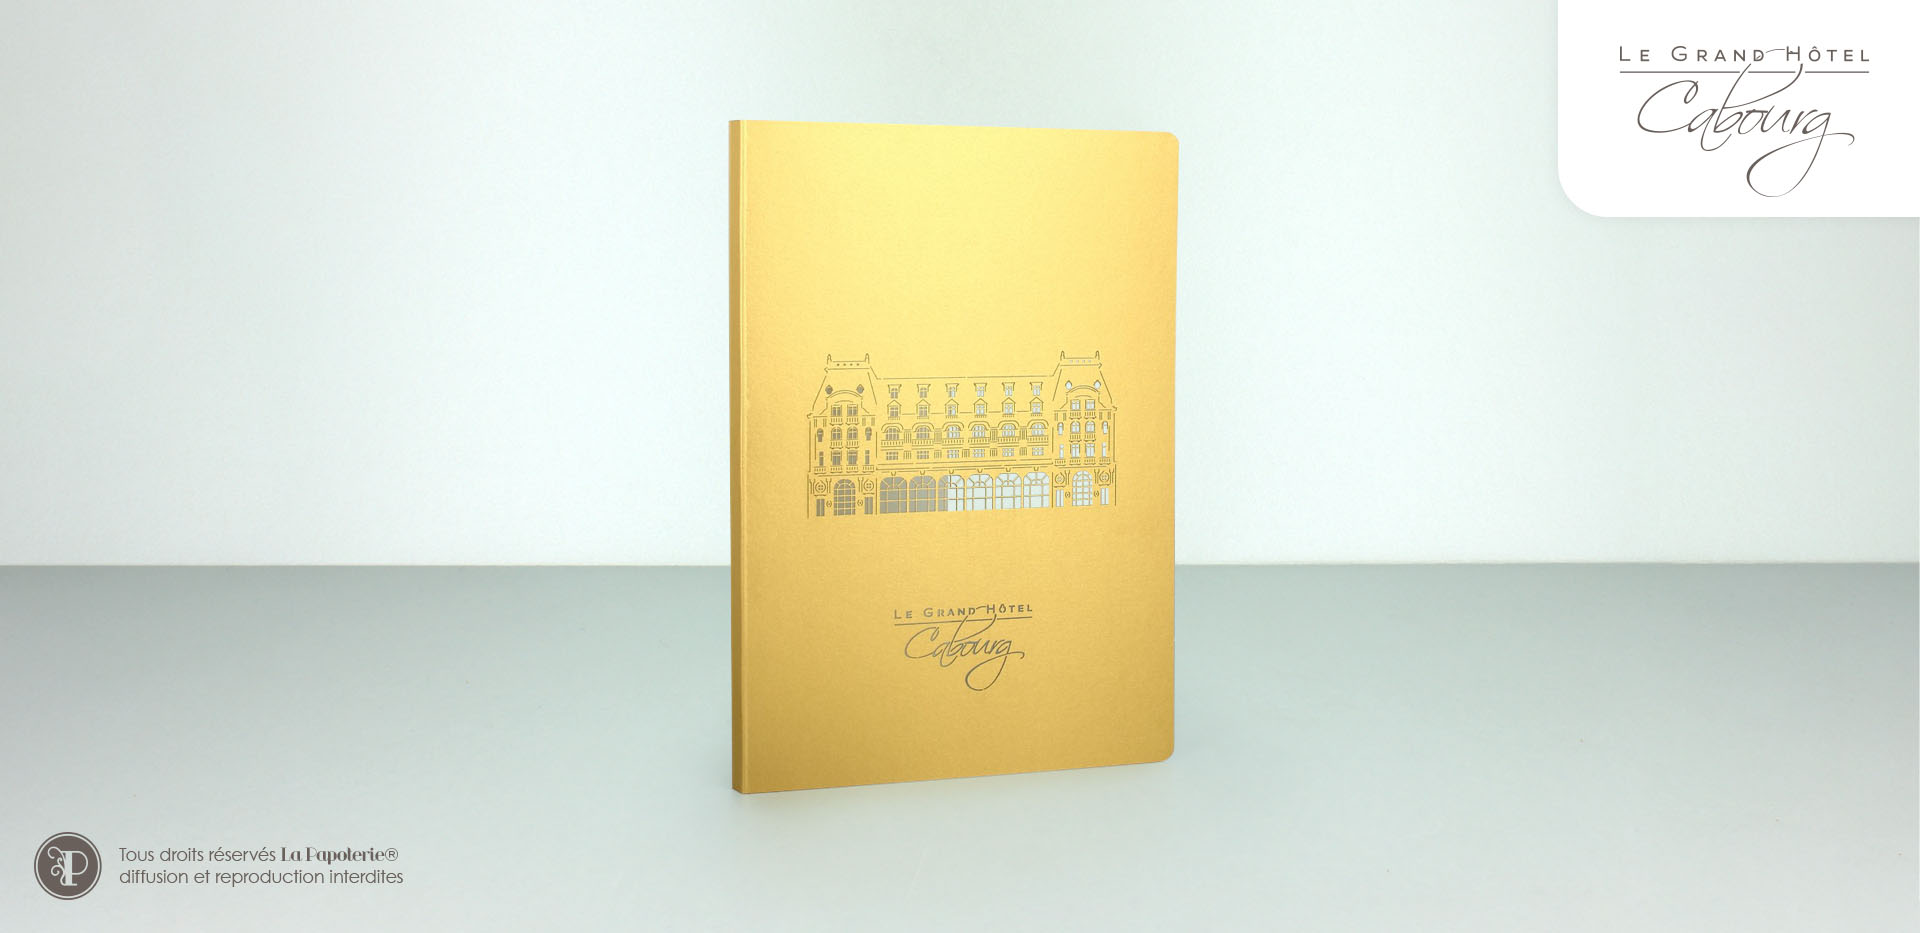 La Papoterie cabourg-carnet-80p-a5 A5 80 pages notebook Cabourg Hotel